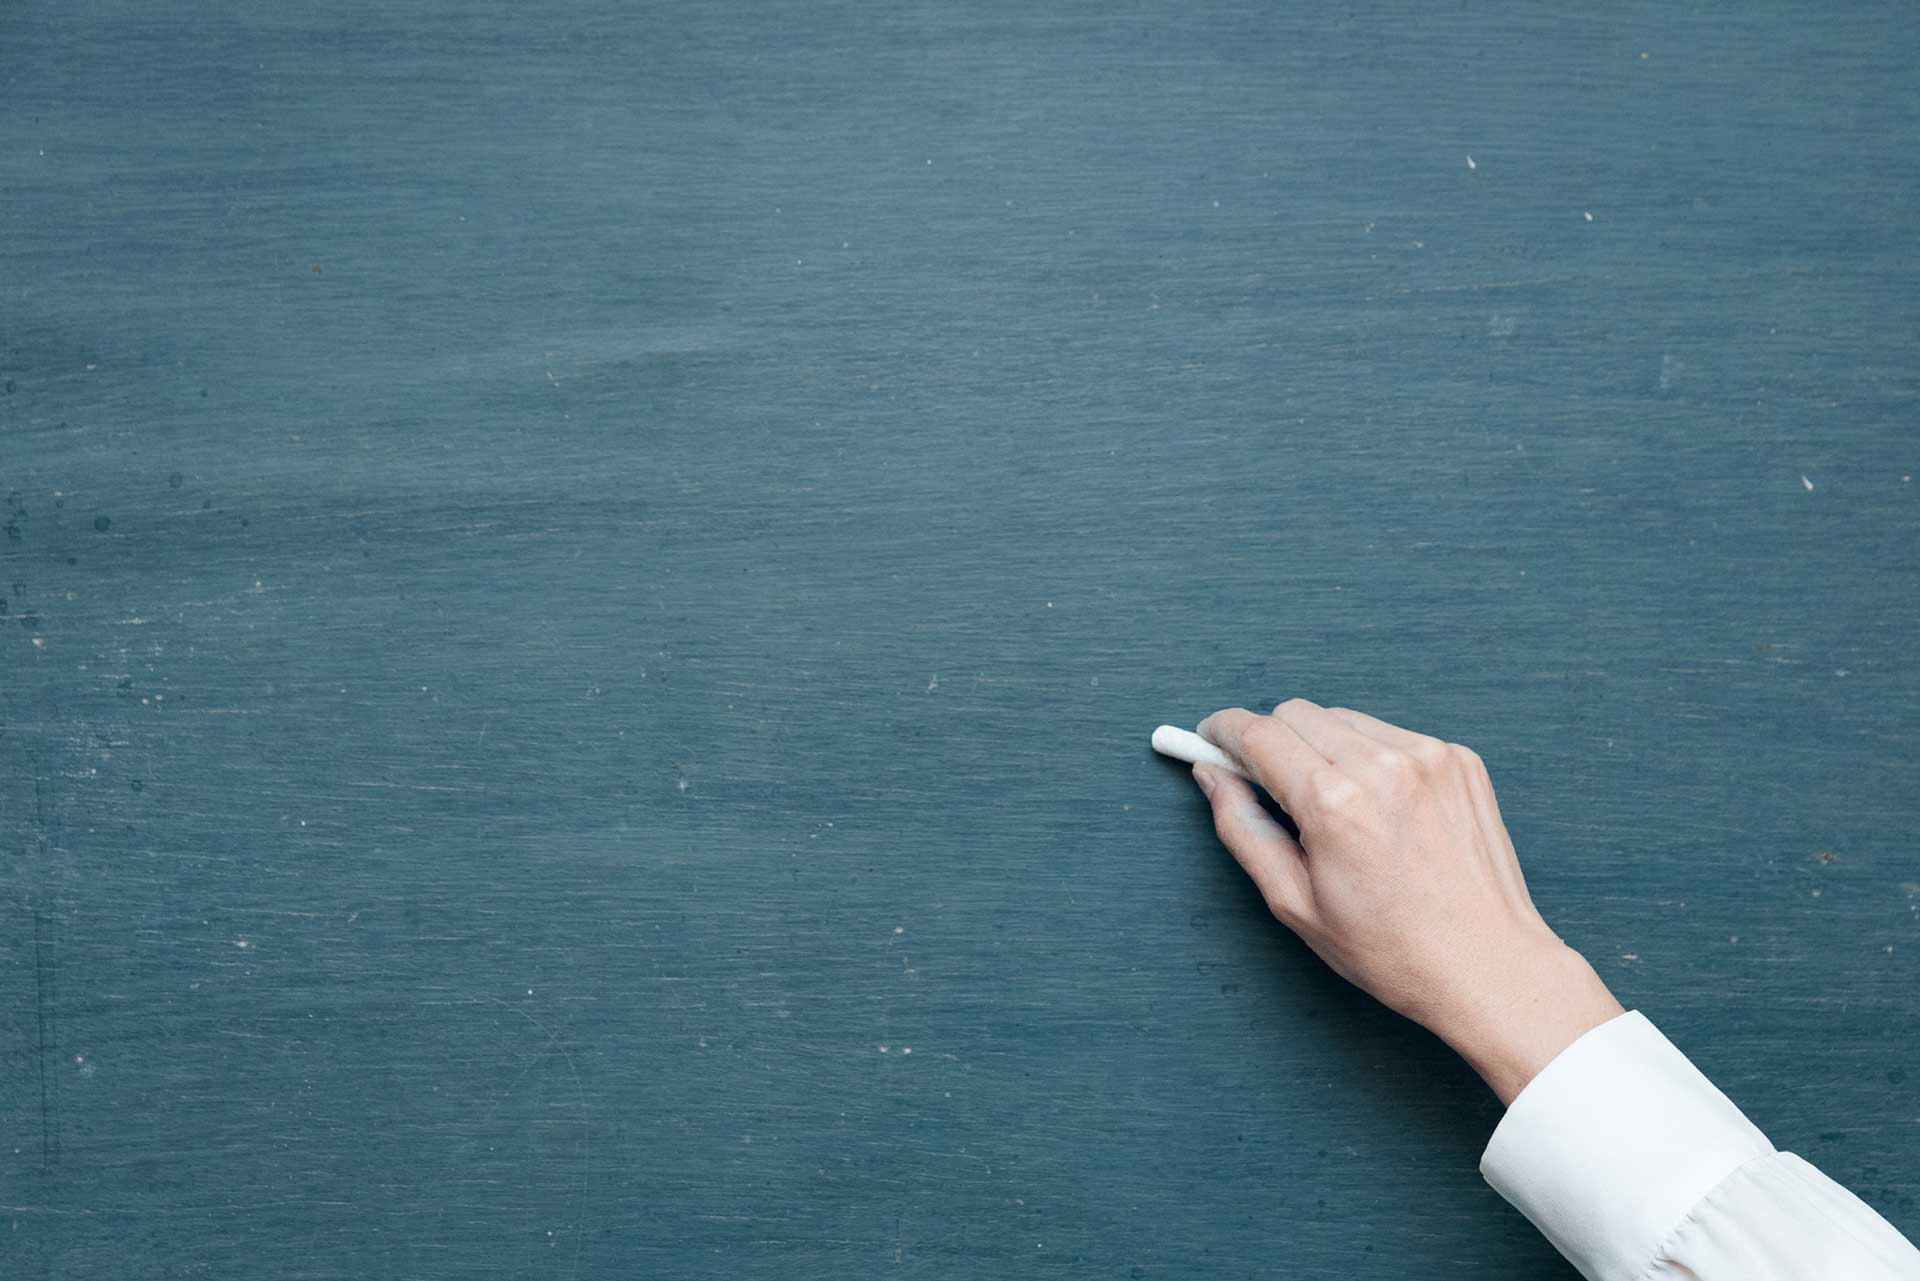 Hand about to write on clean chalkboard